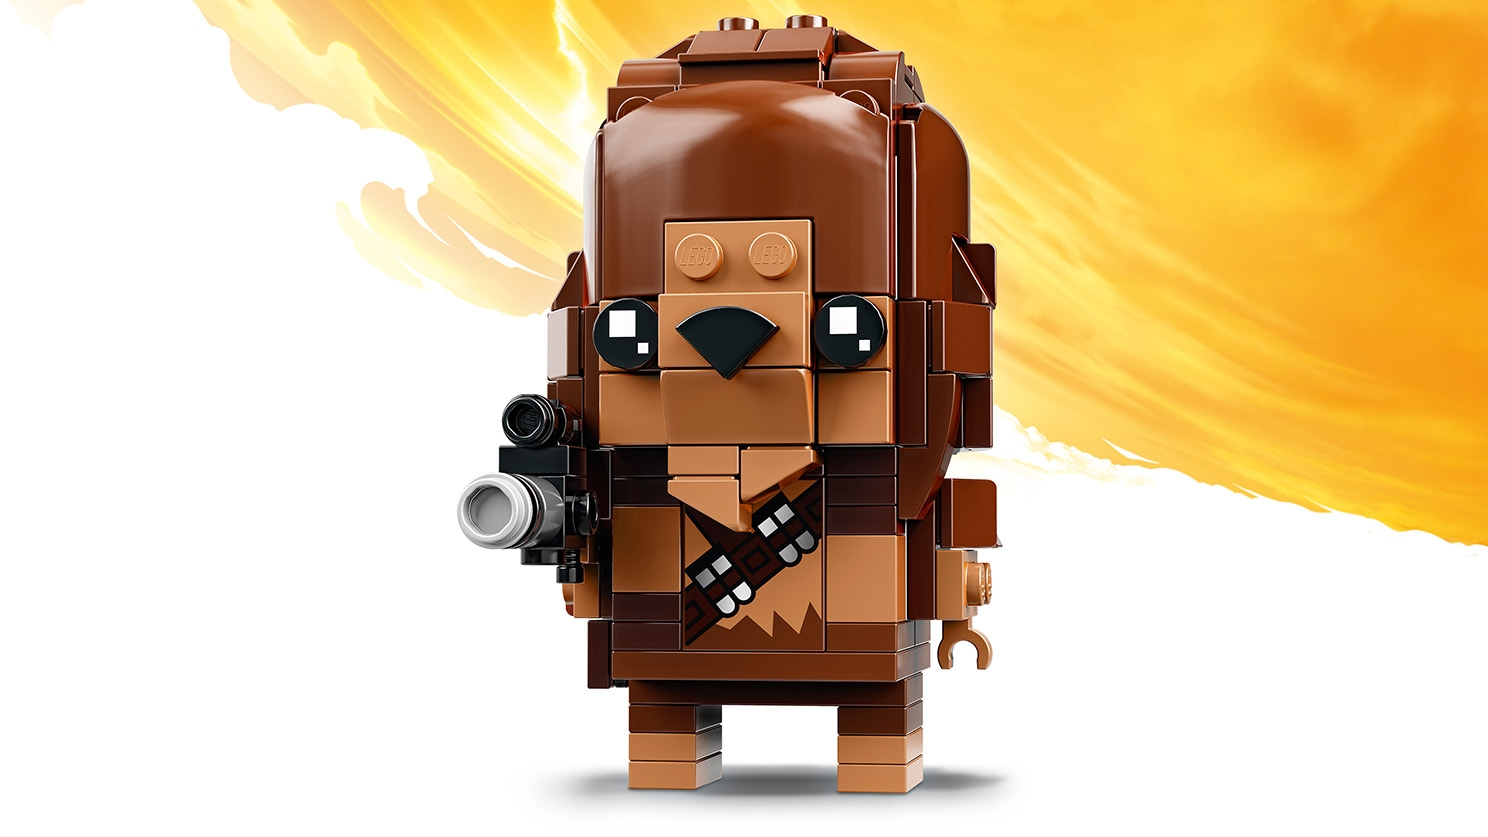 LEGO Brickheadz - 41609 Chewbacca - Build a LEGO Brickheadz figure of Chewbacca from the Star Wars saga. Check out his iconic matted fur, ammunition belt and blaster.